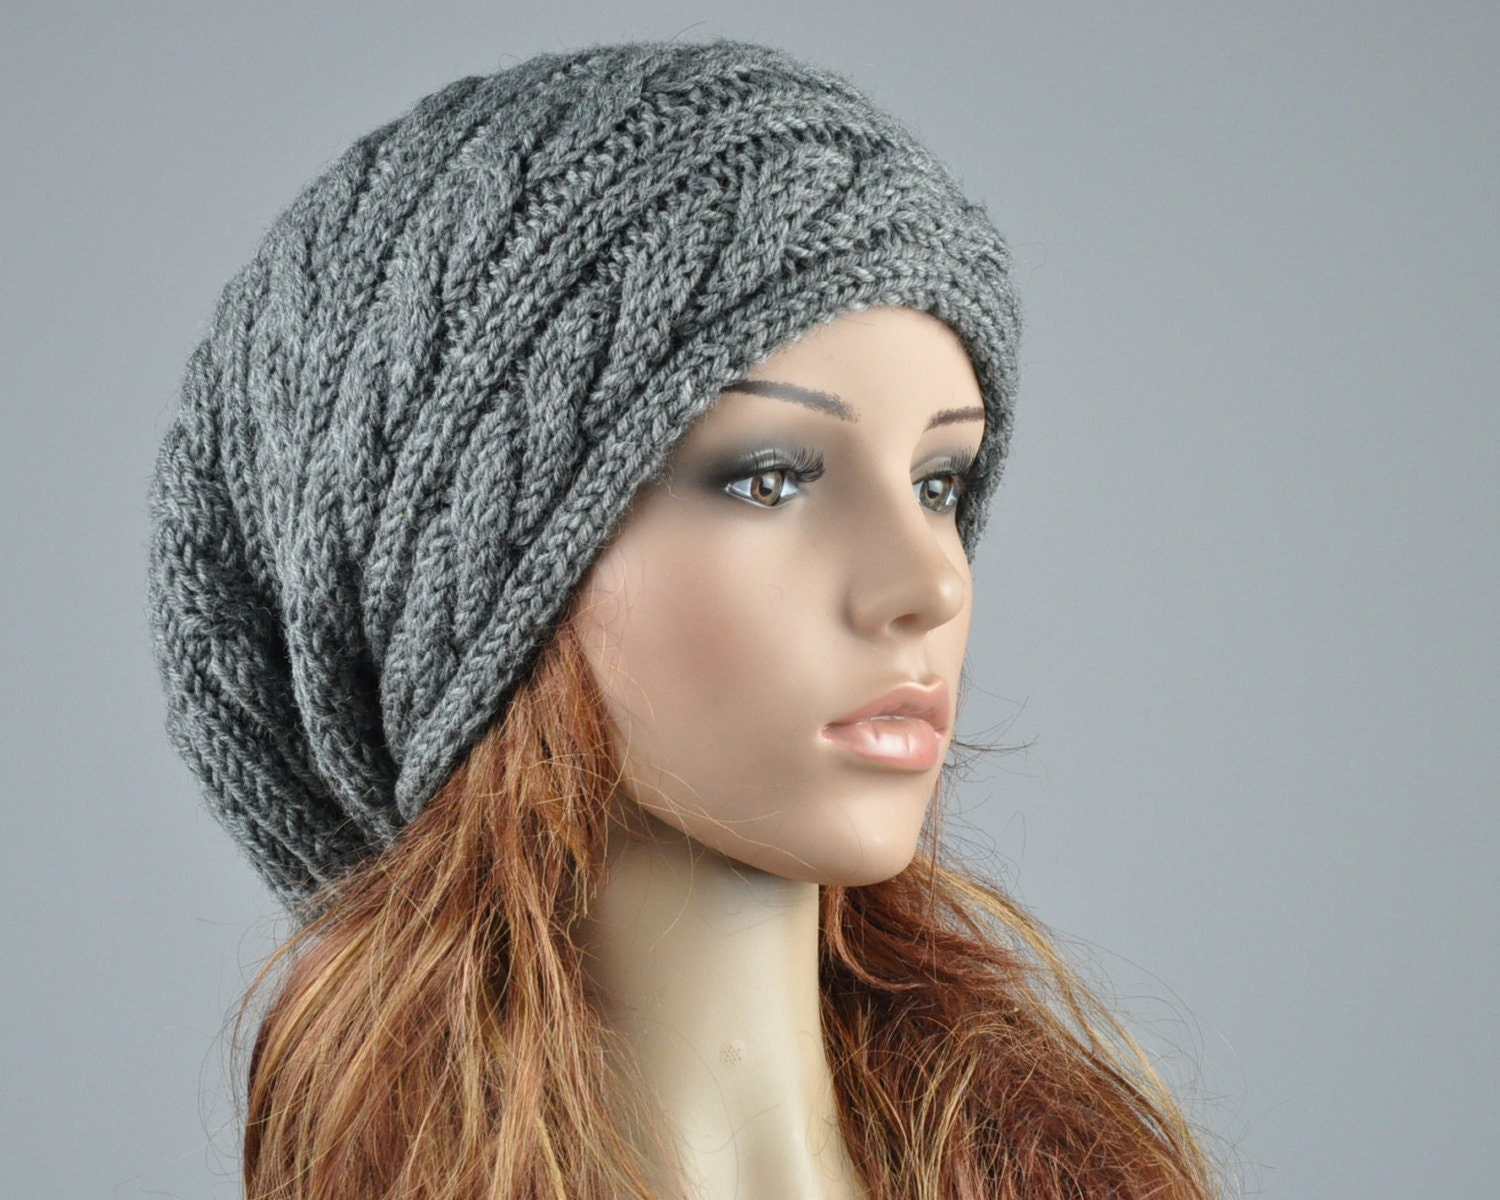 Slouch Hat Knitting Pattern : Hand knit hat woman men unisex Charcoal hat slouchy hat cable